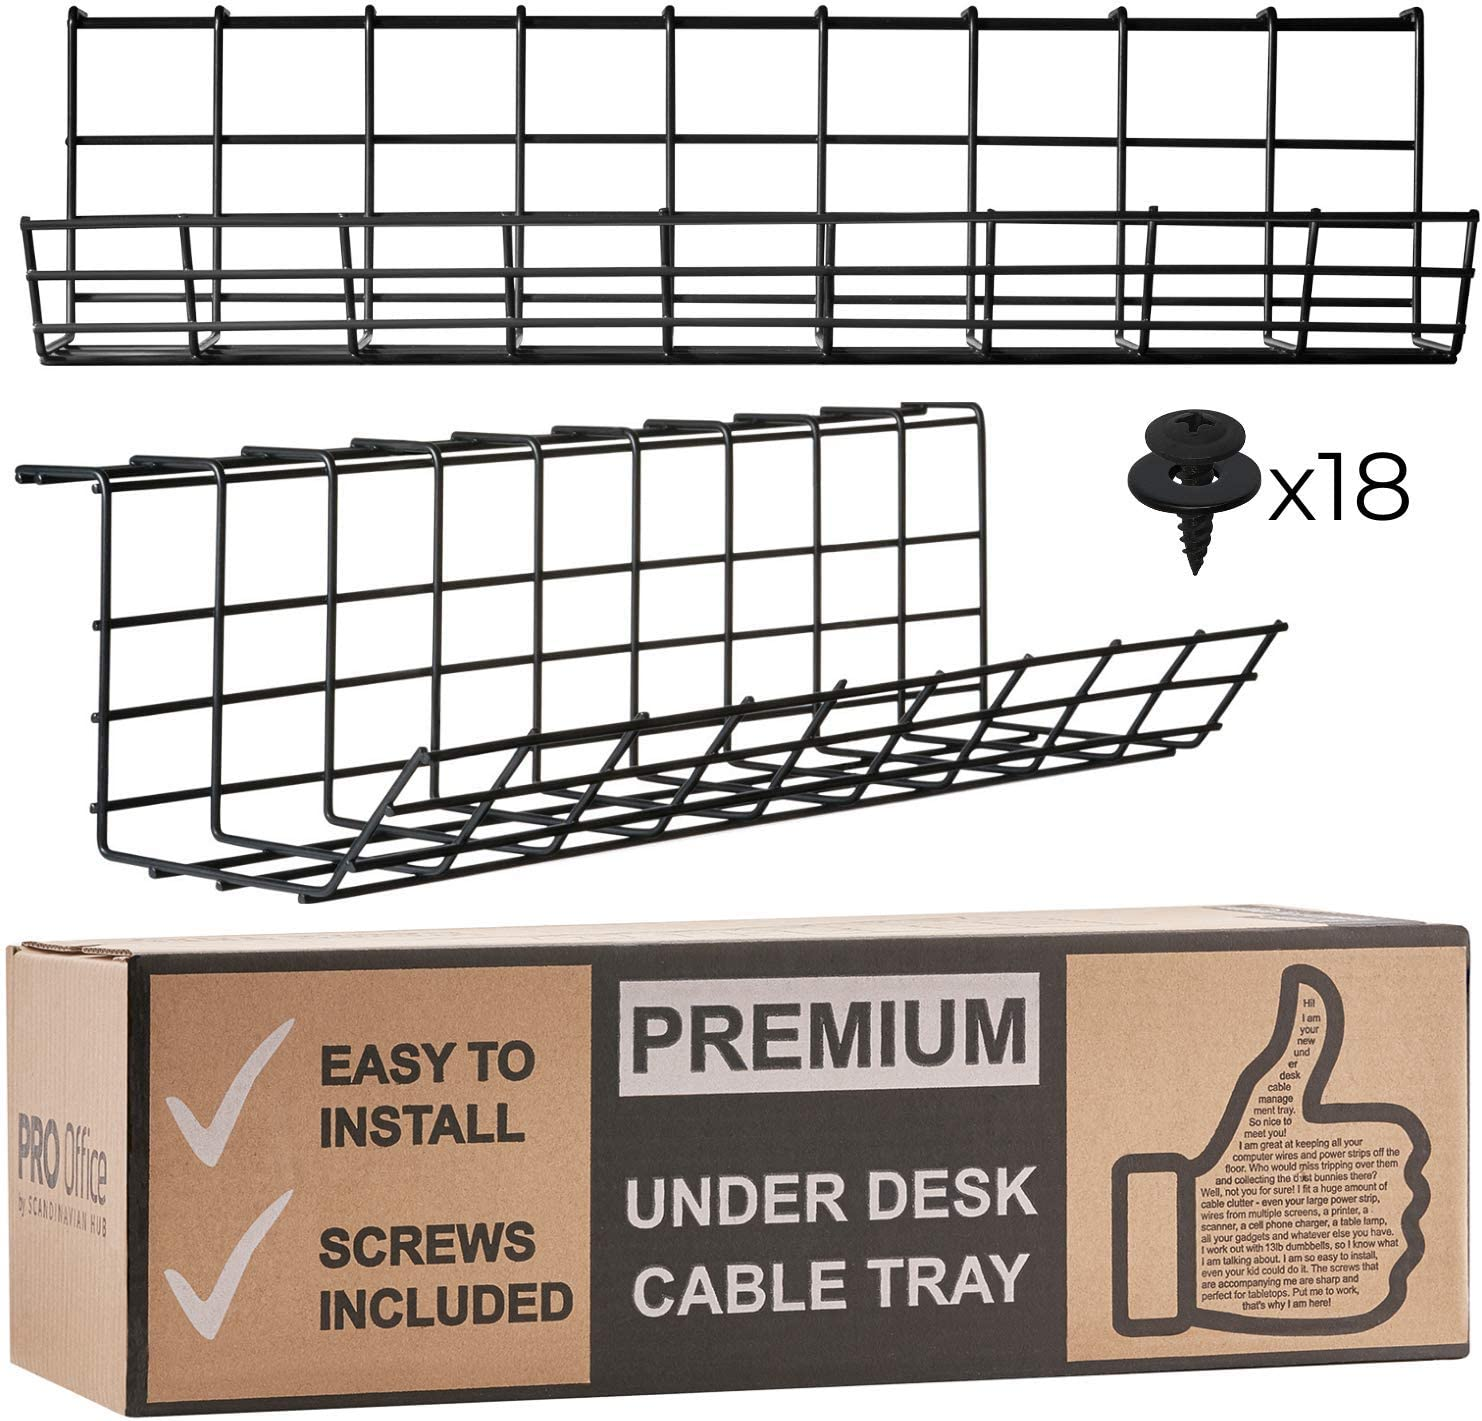 Under Desk Cable Management Tray - Cable Organizer for Wire Management.  Metal Wire Cable Tray for Office and Home. Perfect Standing Desk Cable